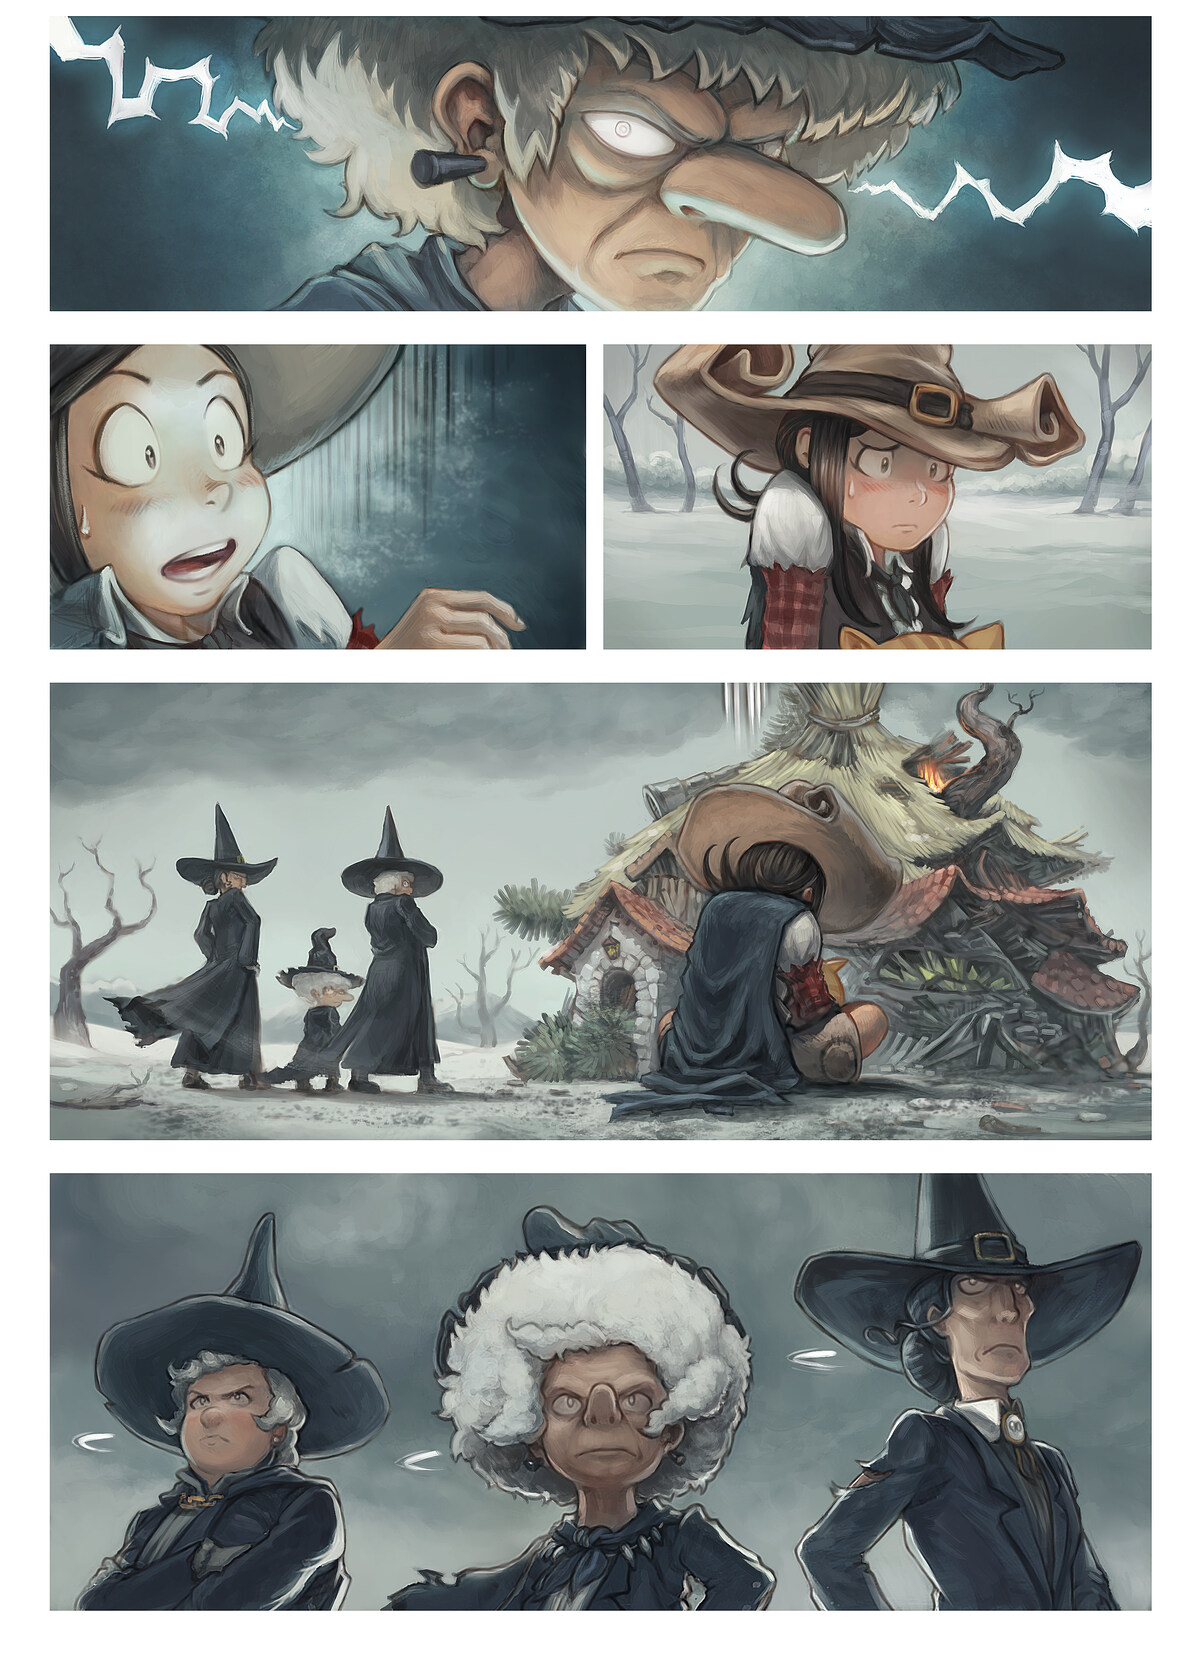 A webcomic page of Pepper&Carrot, Tập 25 [vi], trang 2